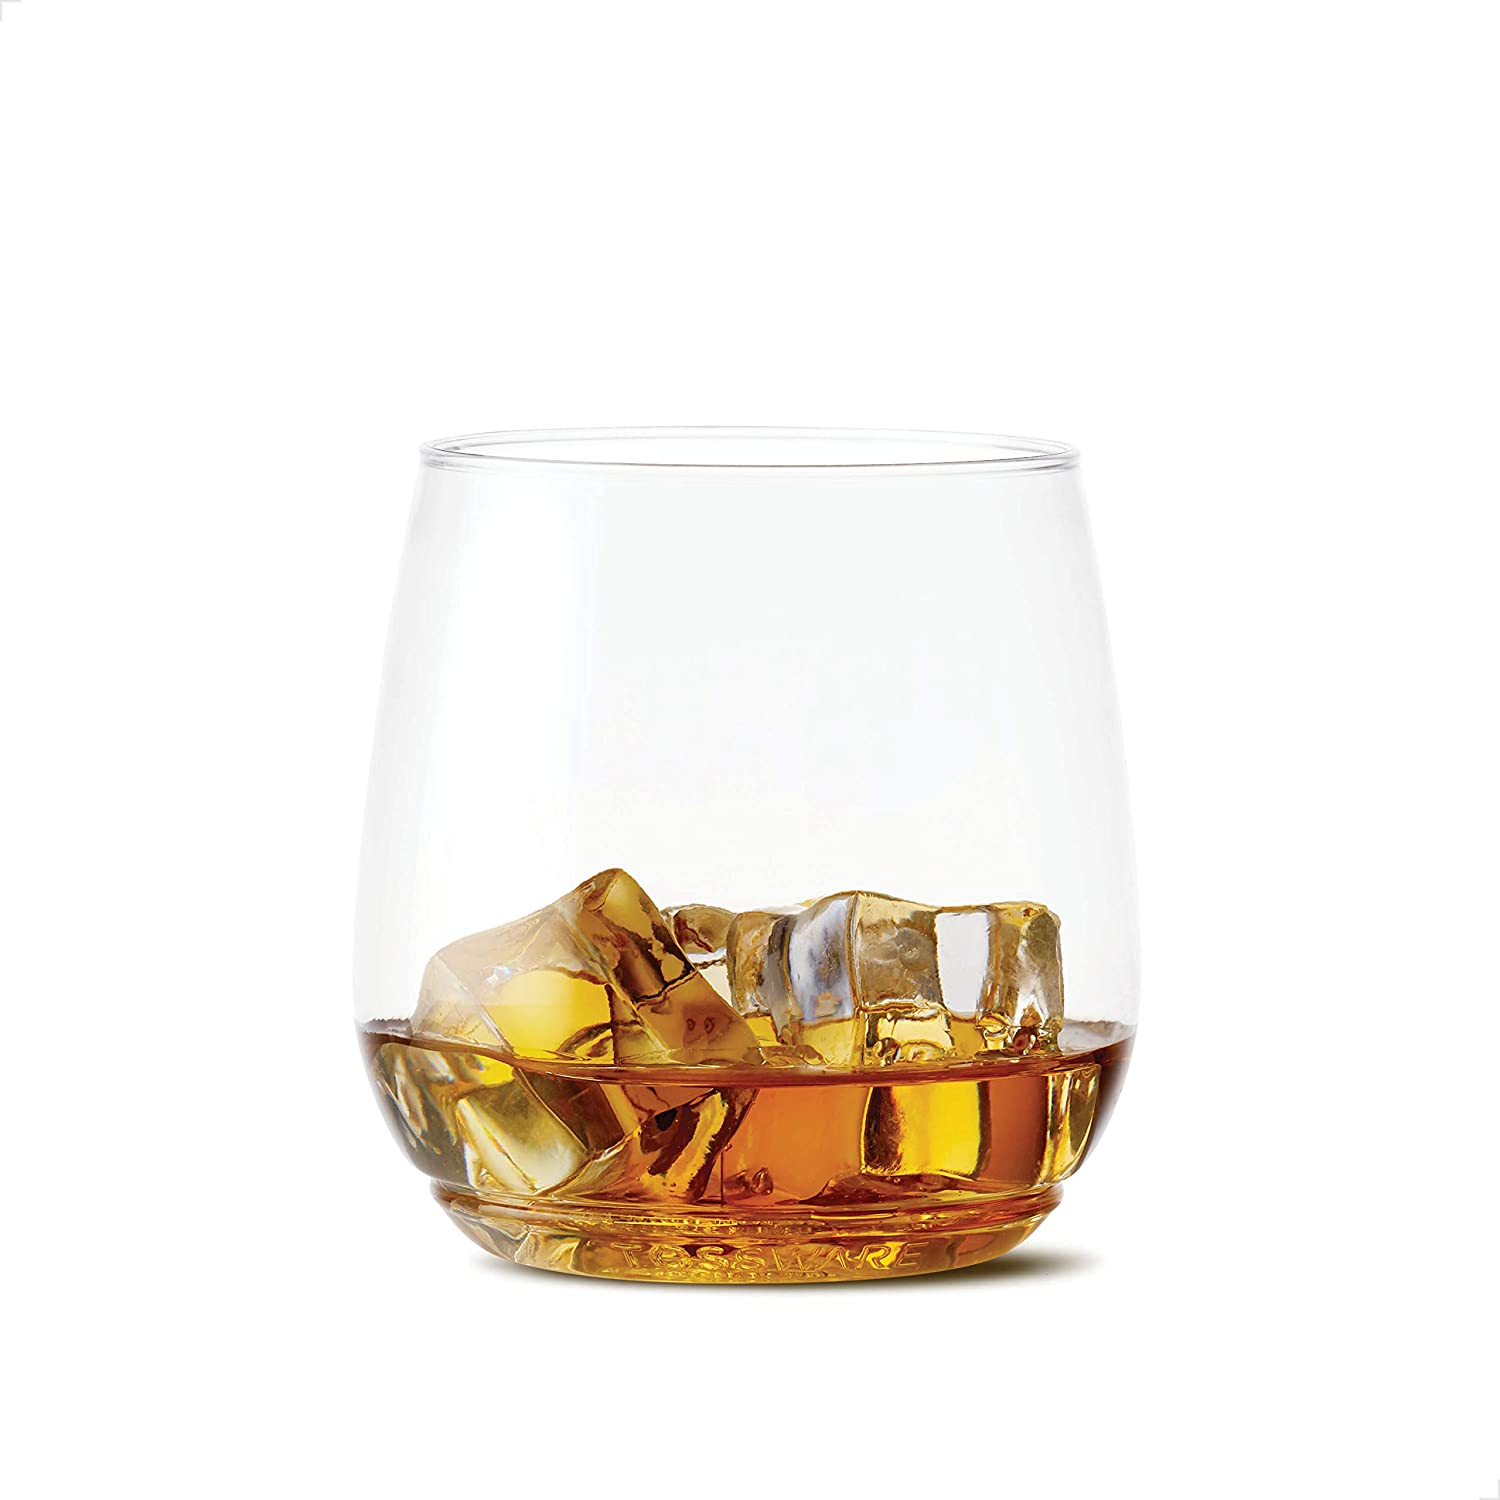 TOSSWARE 12oz Tumbler Jr SET OF 12, Recyclable, Unbreakable & Crystal Clear Plastic Whiskey Glasses